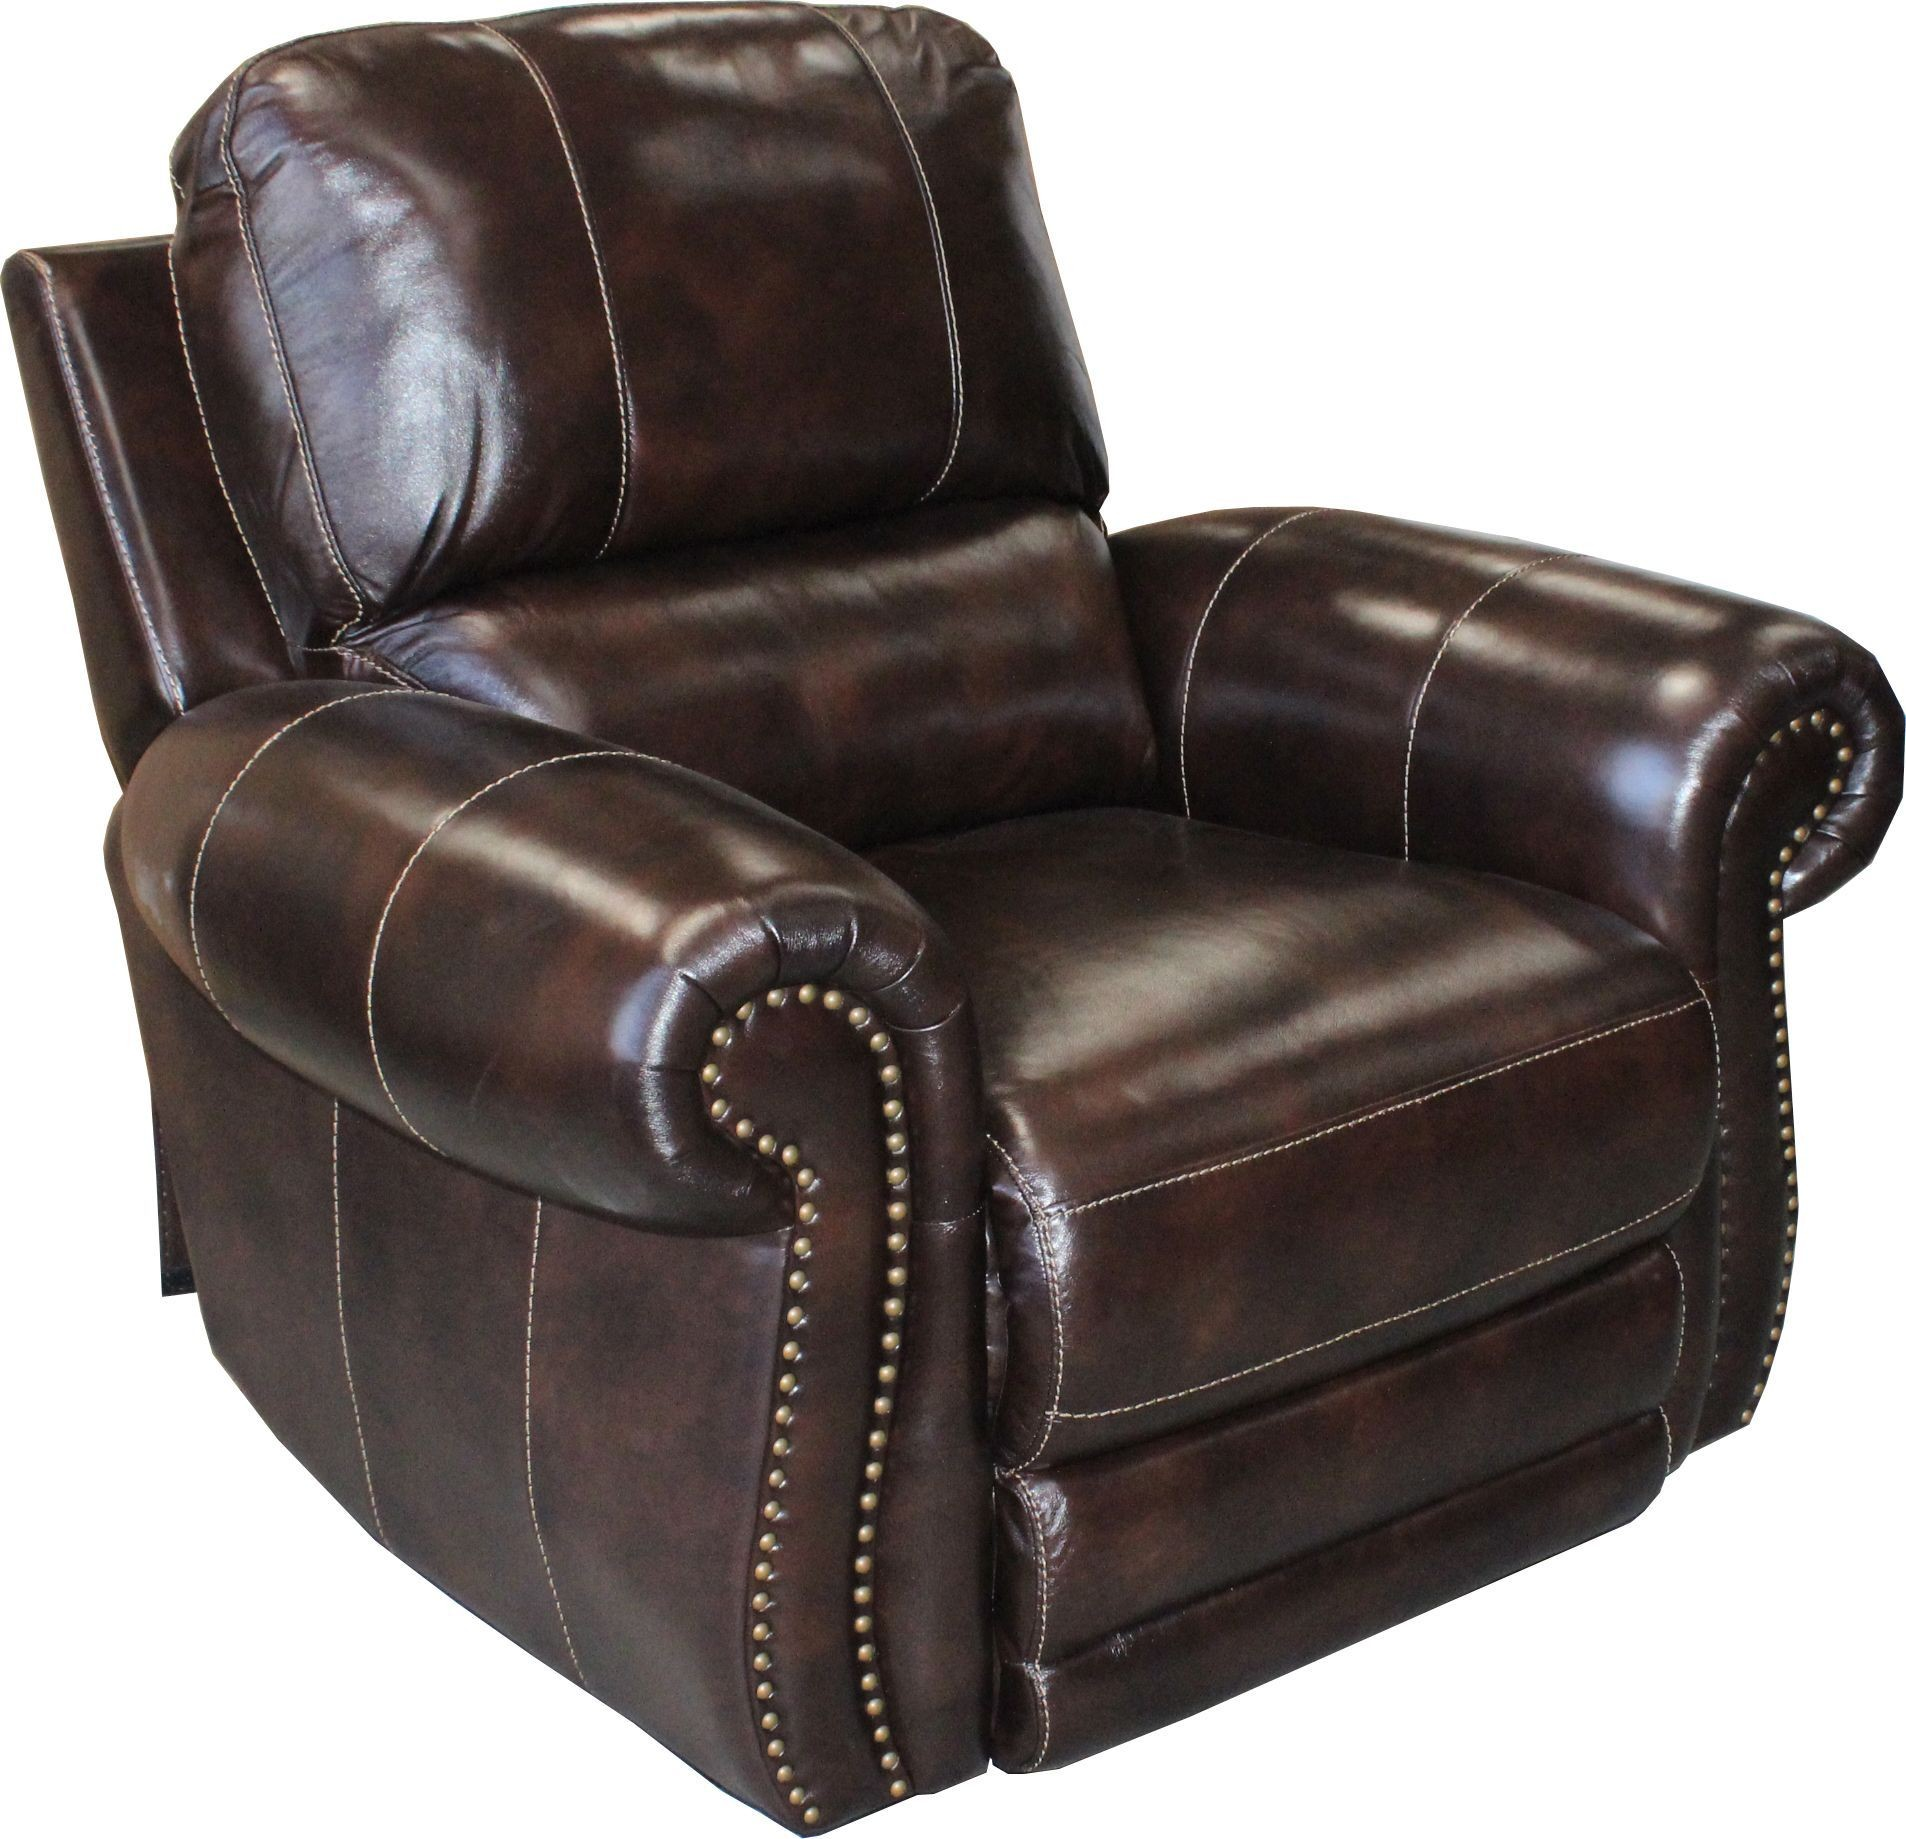 parker leather sofa reviews score live tennis thurston shadow dual power reclining living room set from